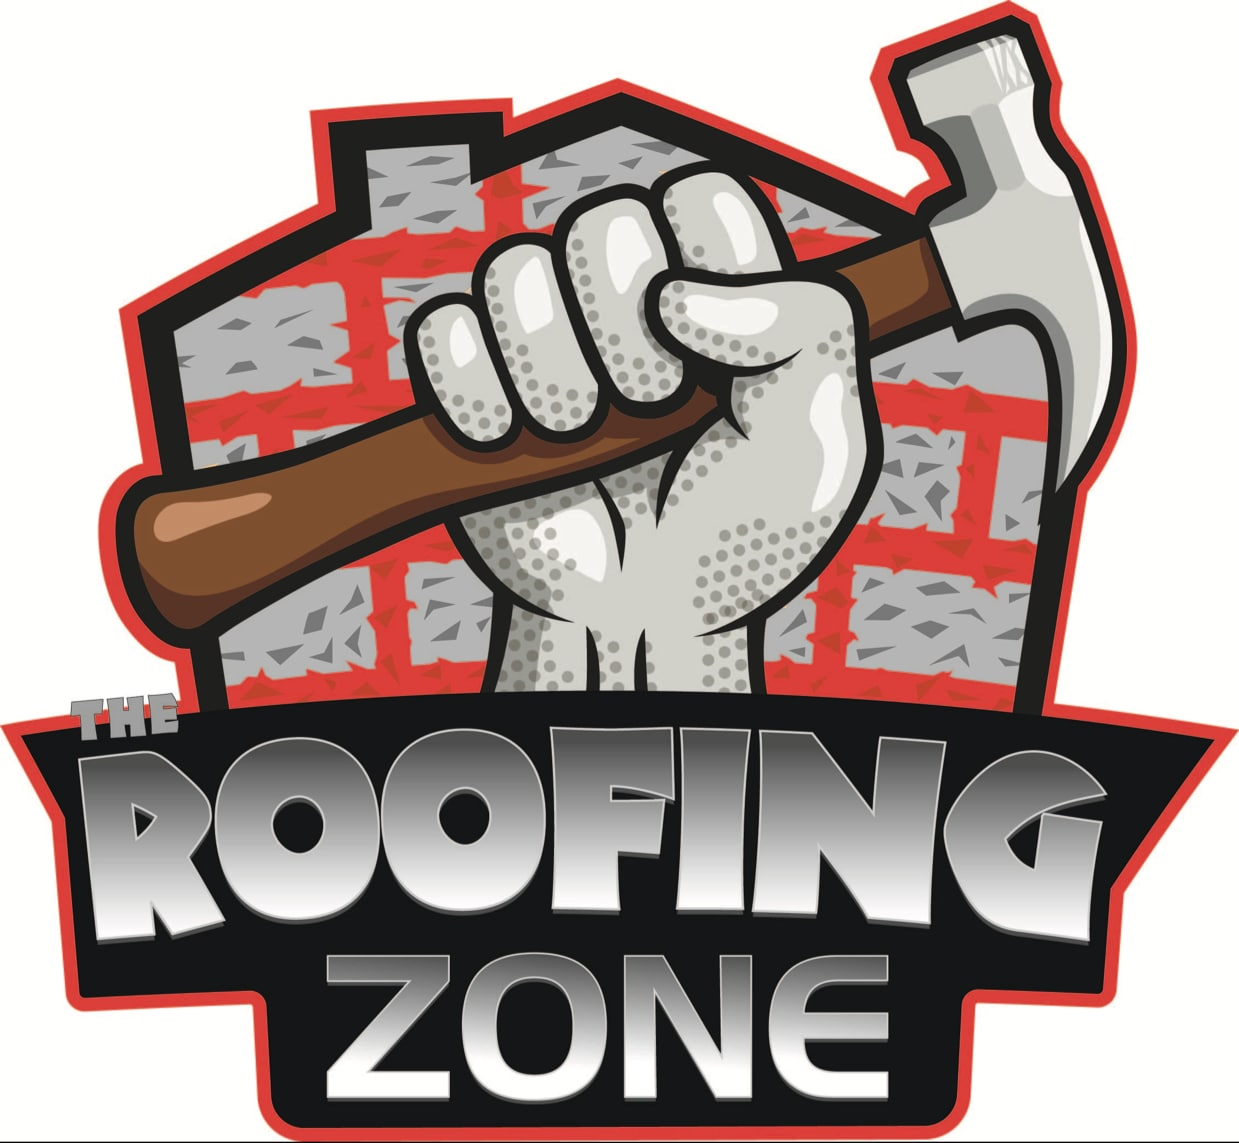 The Roofing Zone